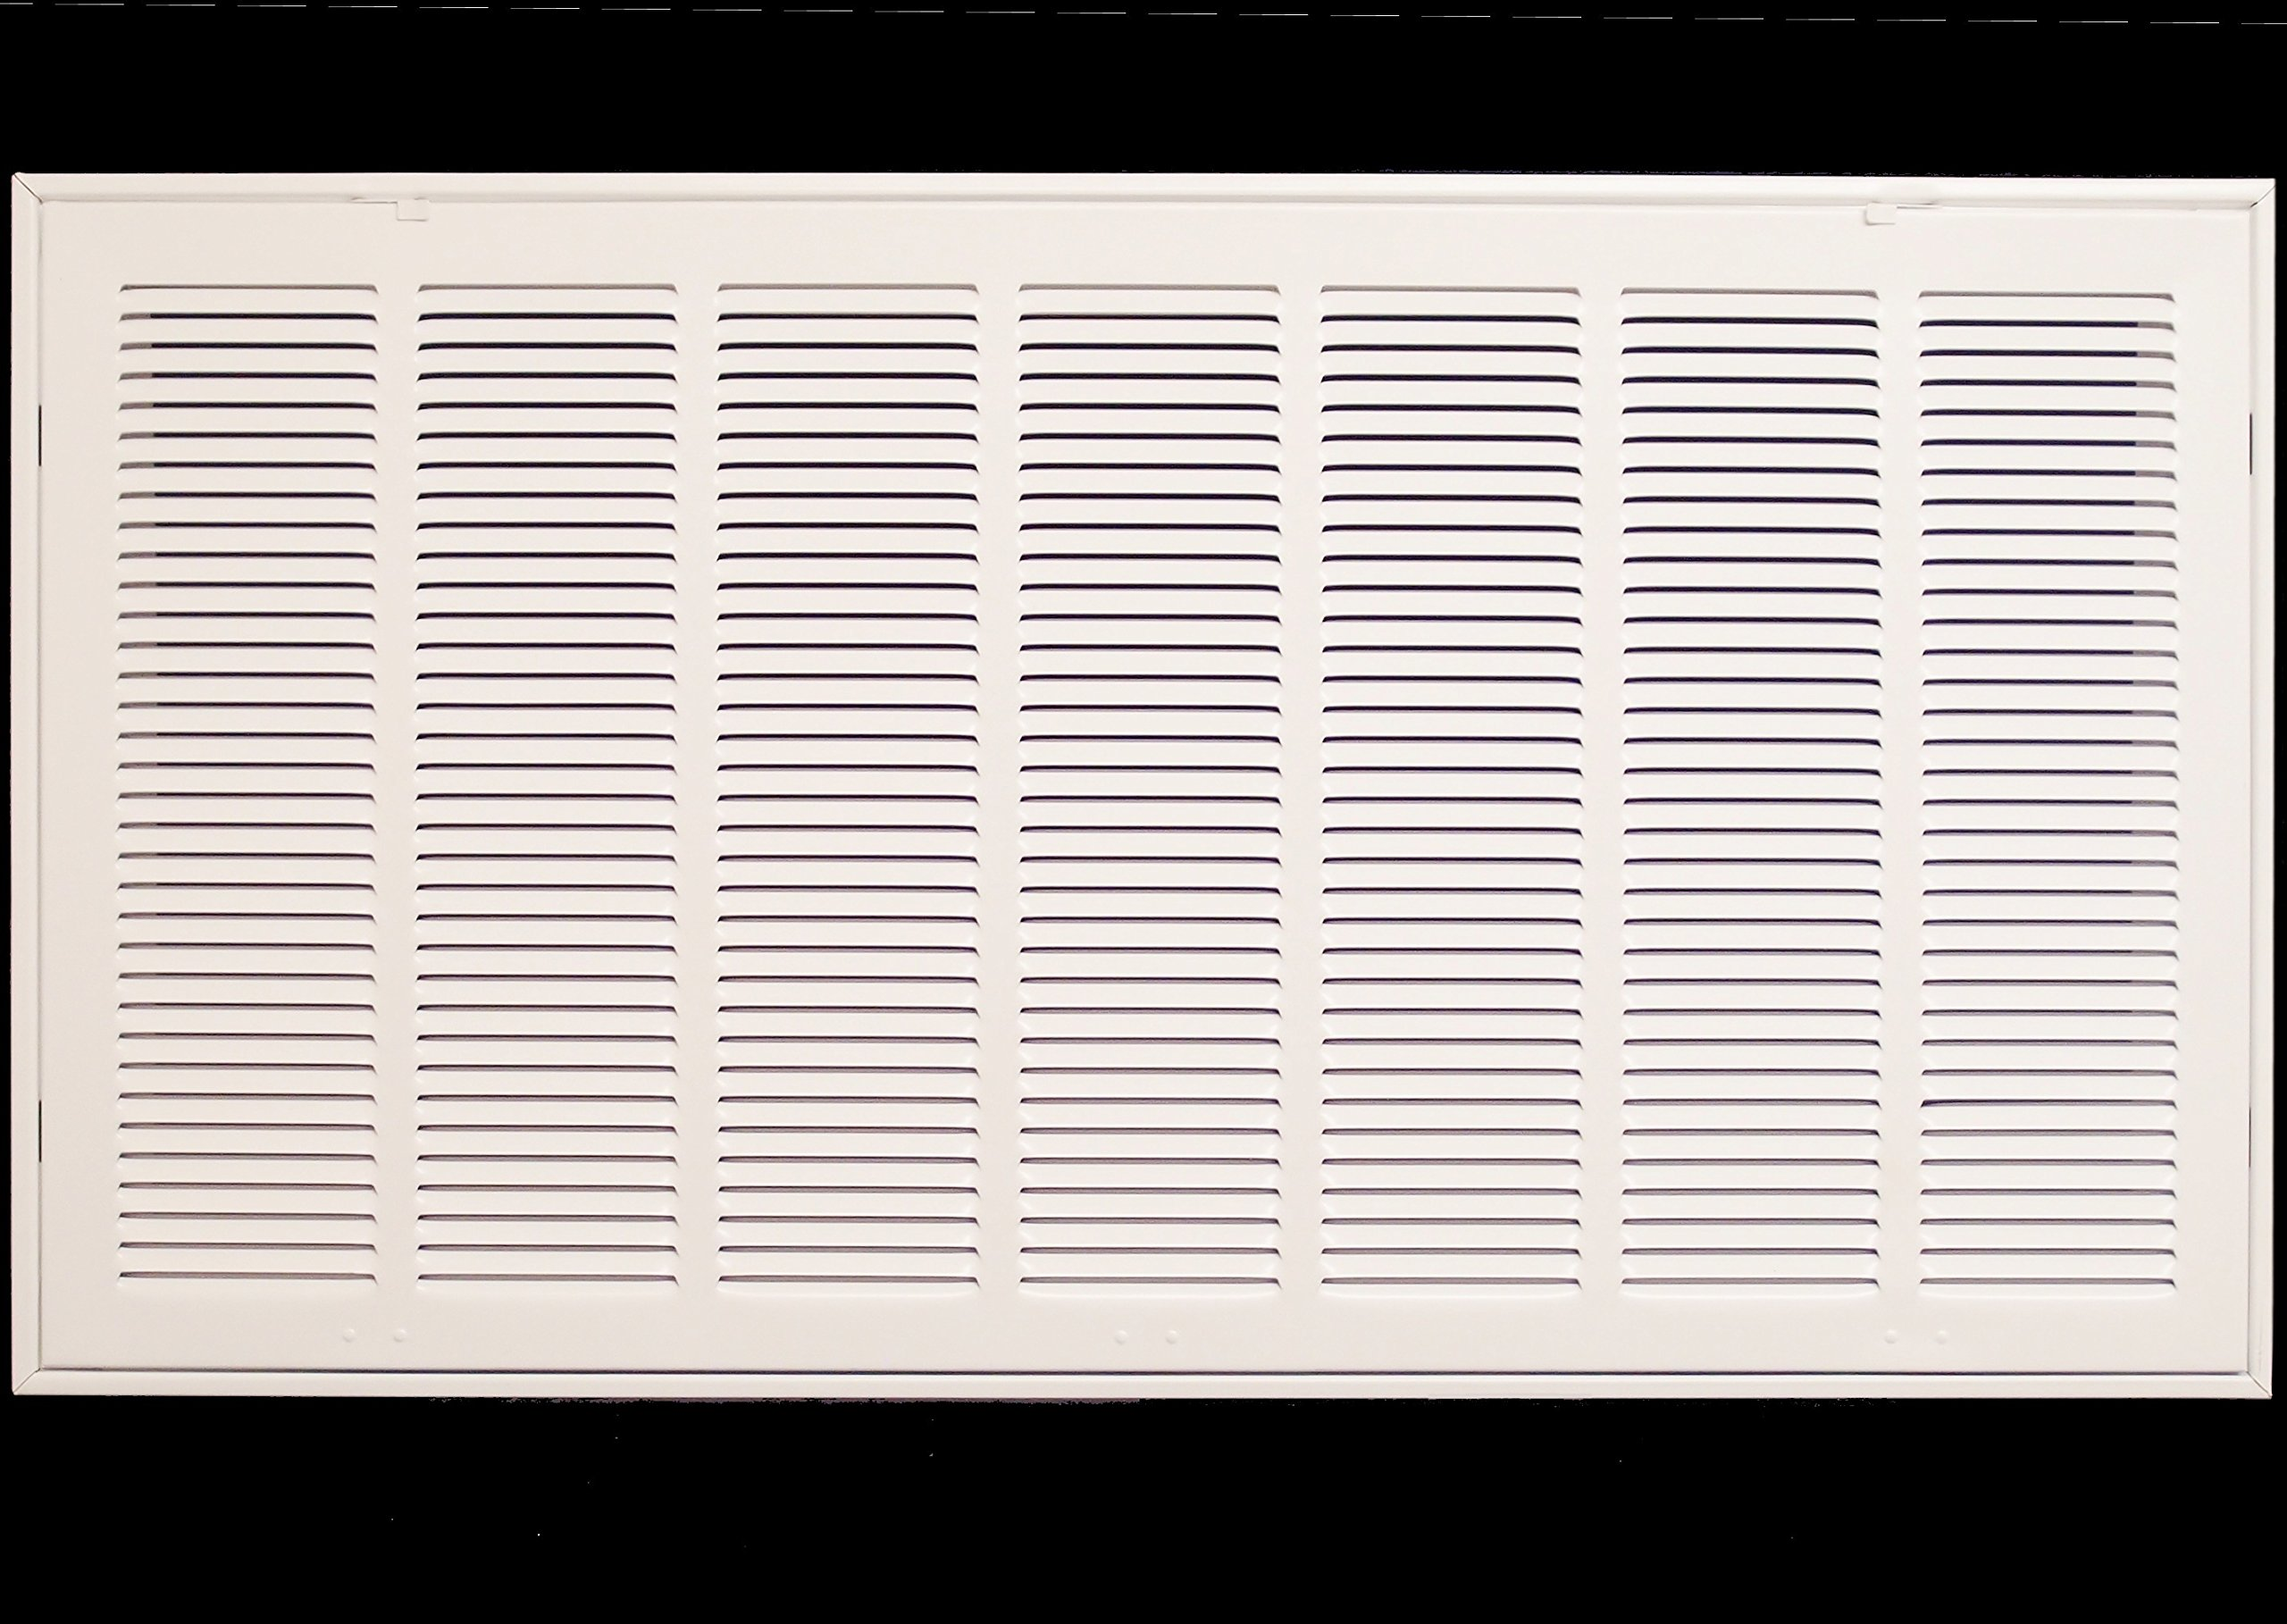 36'' X 30 Steel Return Air Filter Grille for 1'' Filter - Fixed Hinged - ceiling Recommended - HVAC DUCT COVER - Flat Stamped Face - White [Outer Dimensions: 38.5''w X 32.5''h]